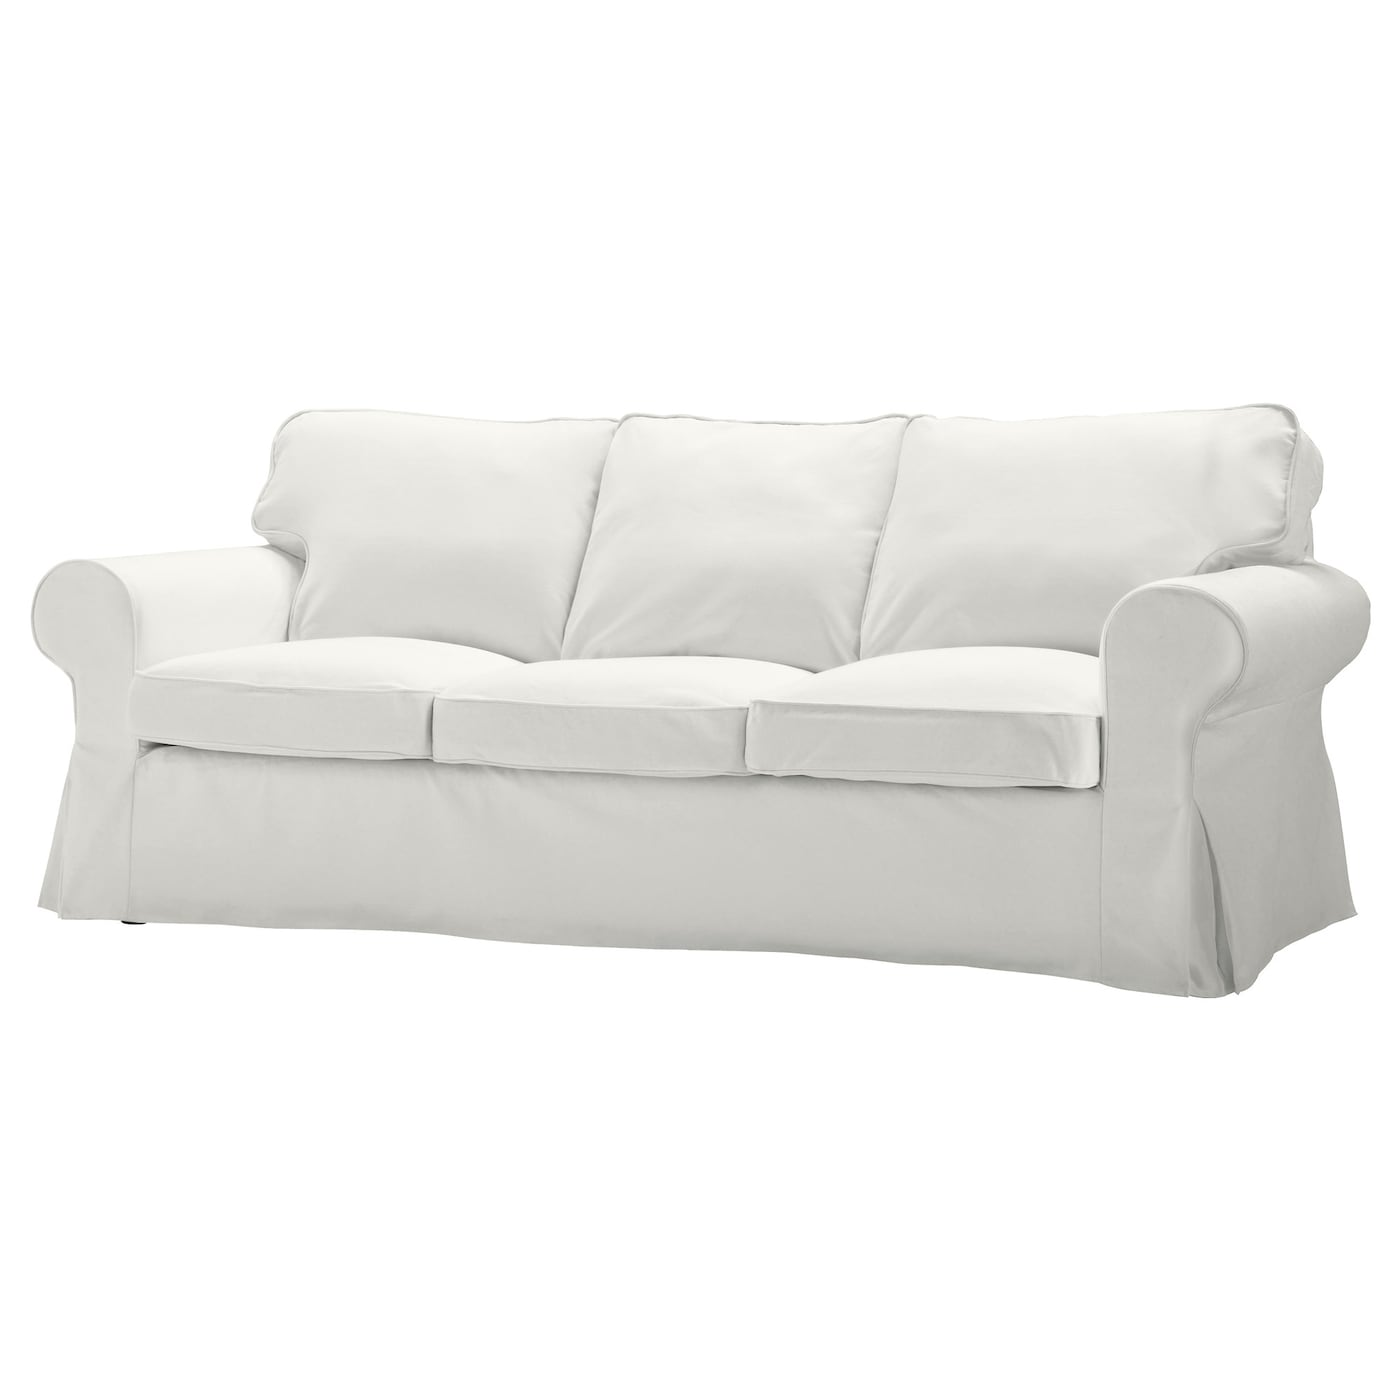 Ektorp three seat sofa blekinge white ikea for White divan chair